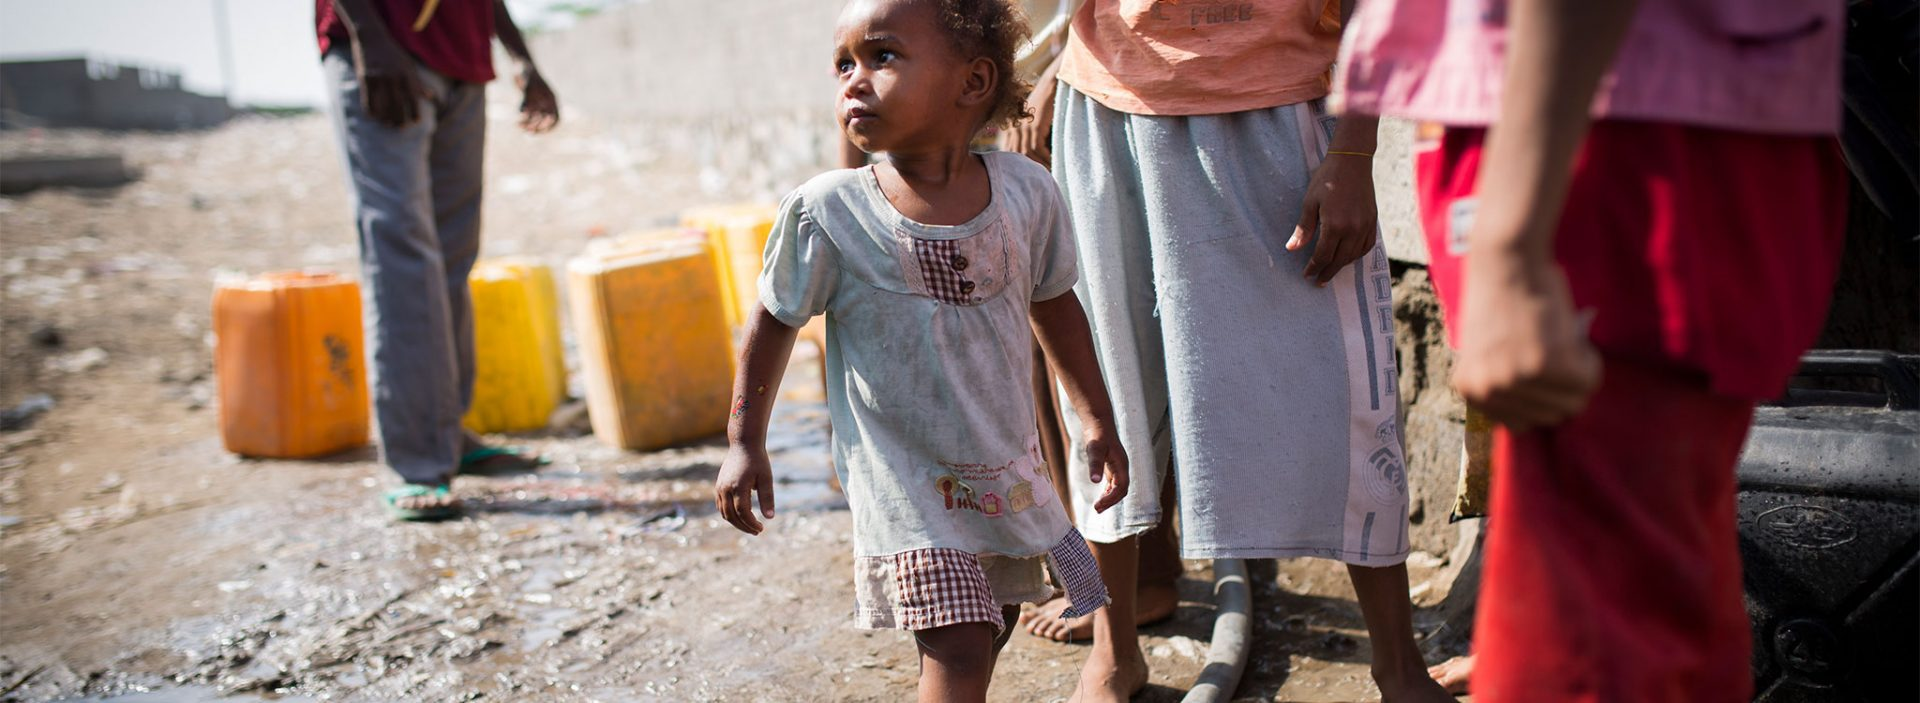 Young Yemeni girl standing with lots of water cans as her family collects water from pumps